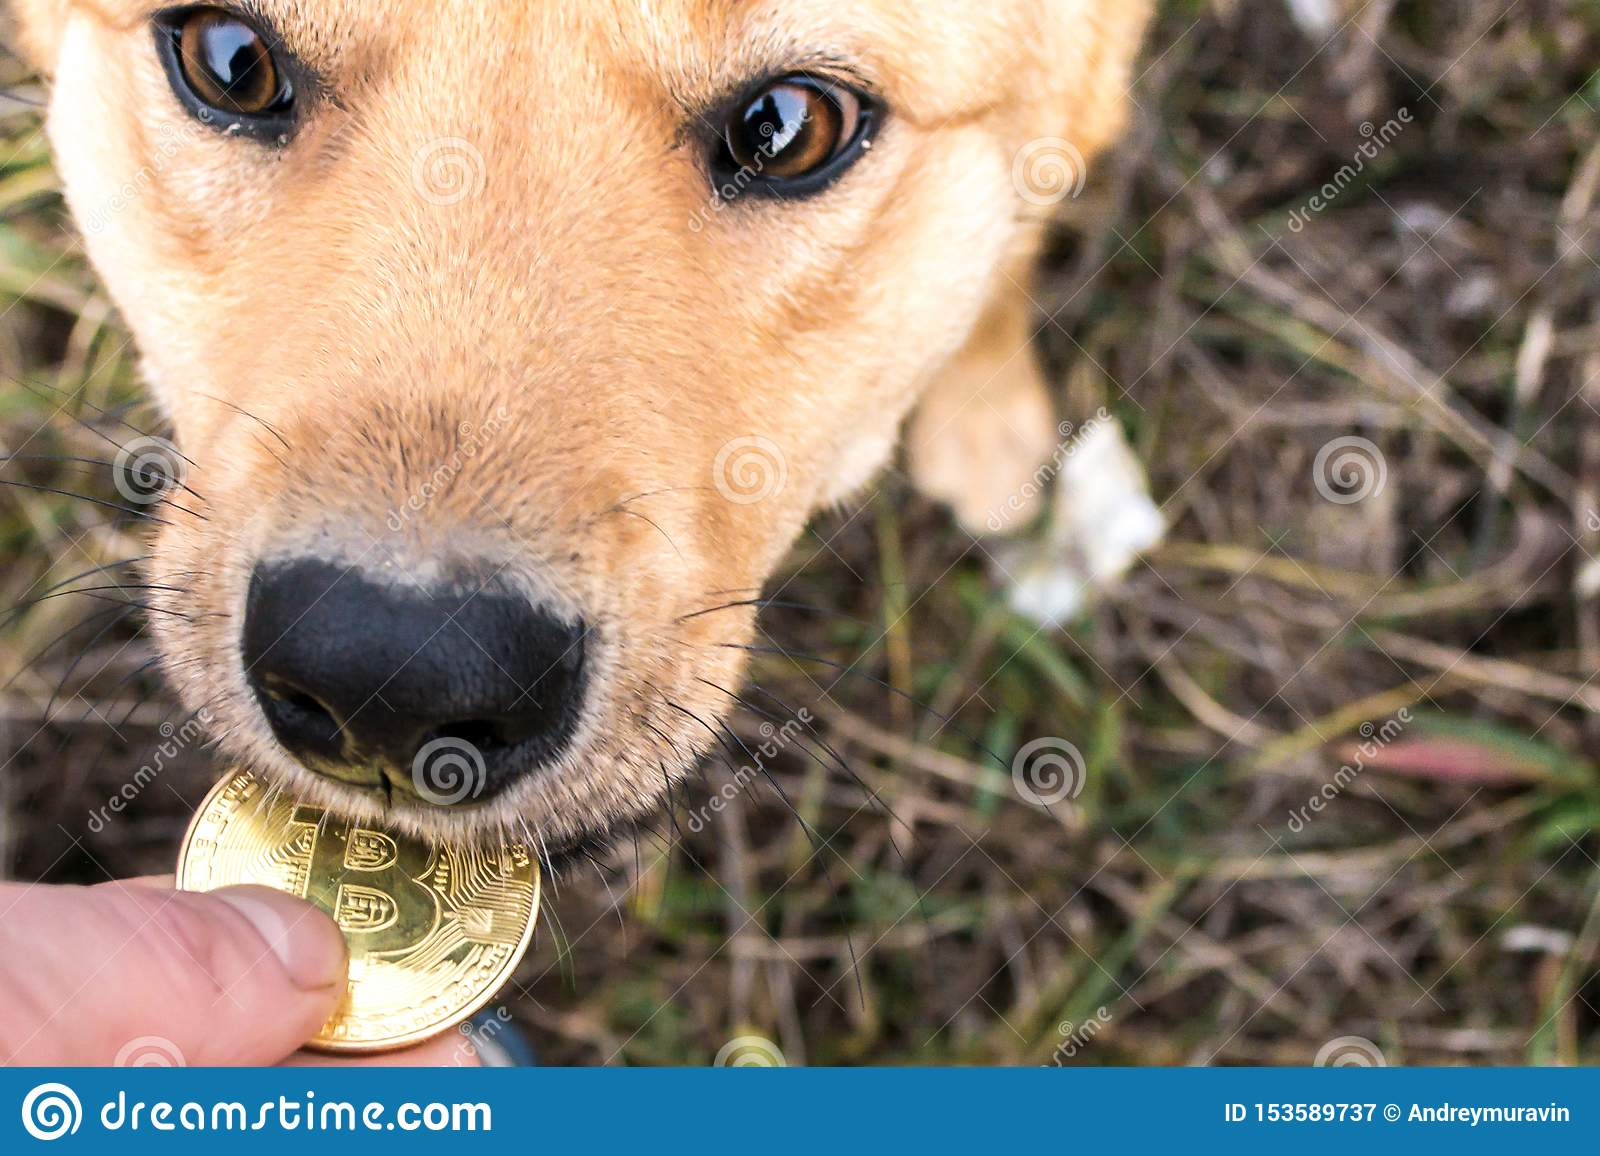 Bitcoins pictures of dogs boylesports betting rules of 21